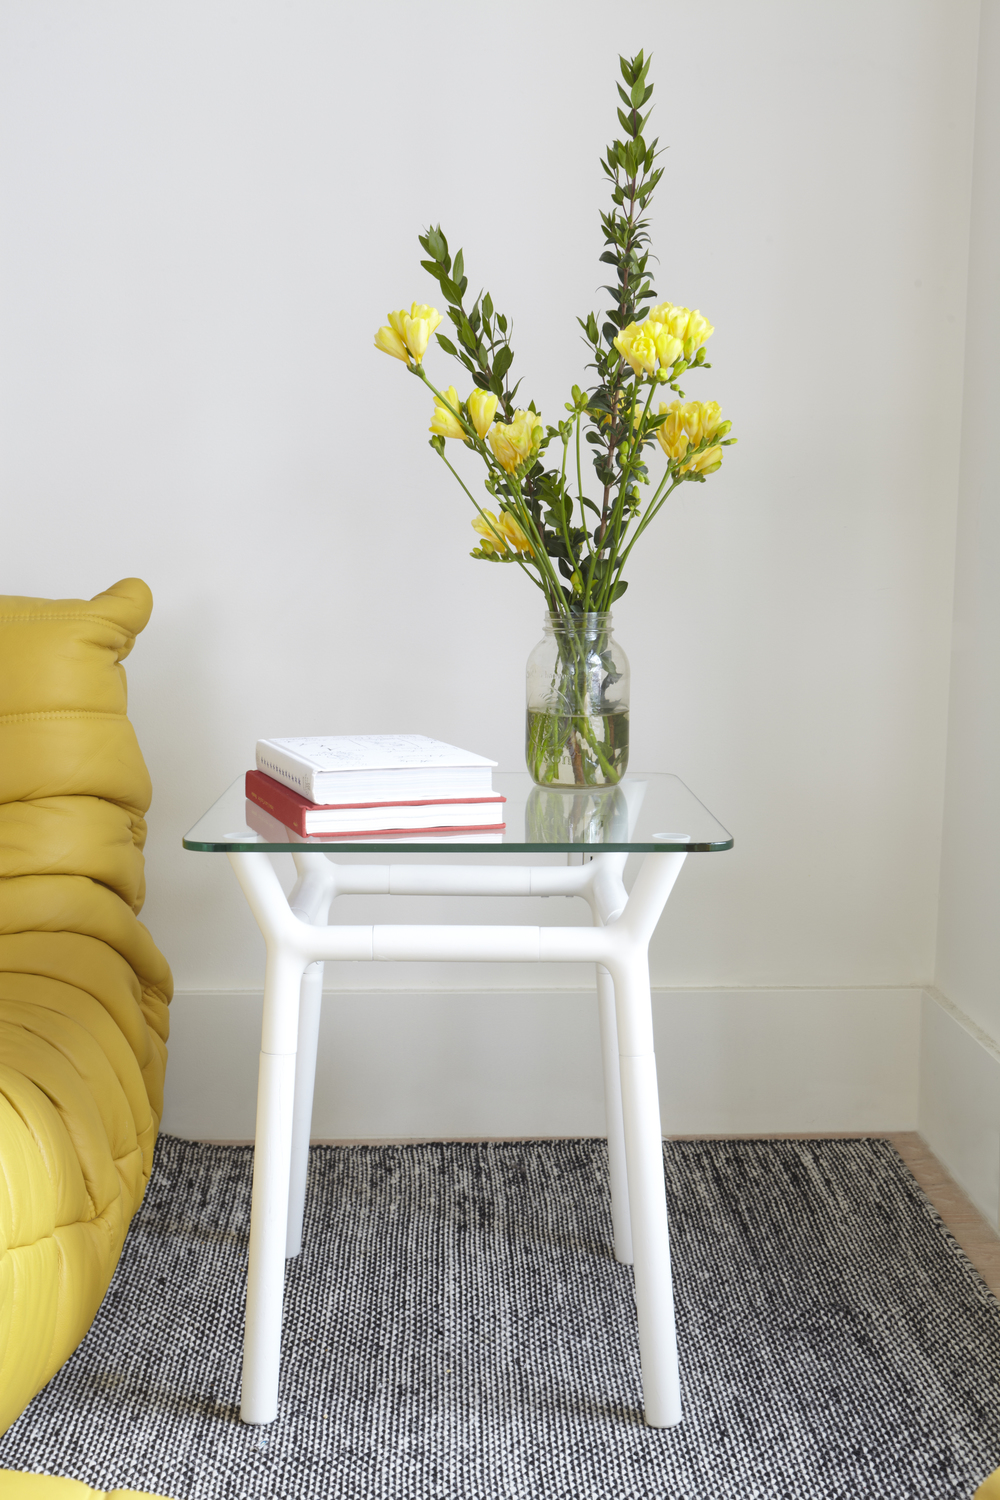 320270-660_KONNECT_SIDE_TABLE_WHITE_INSITU_01.jpg